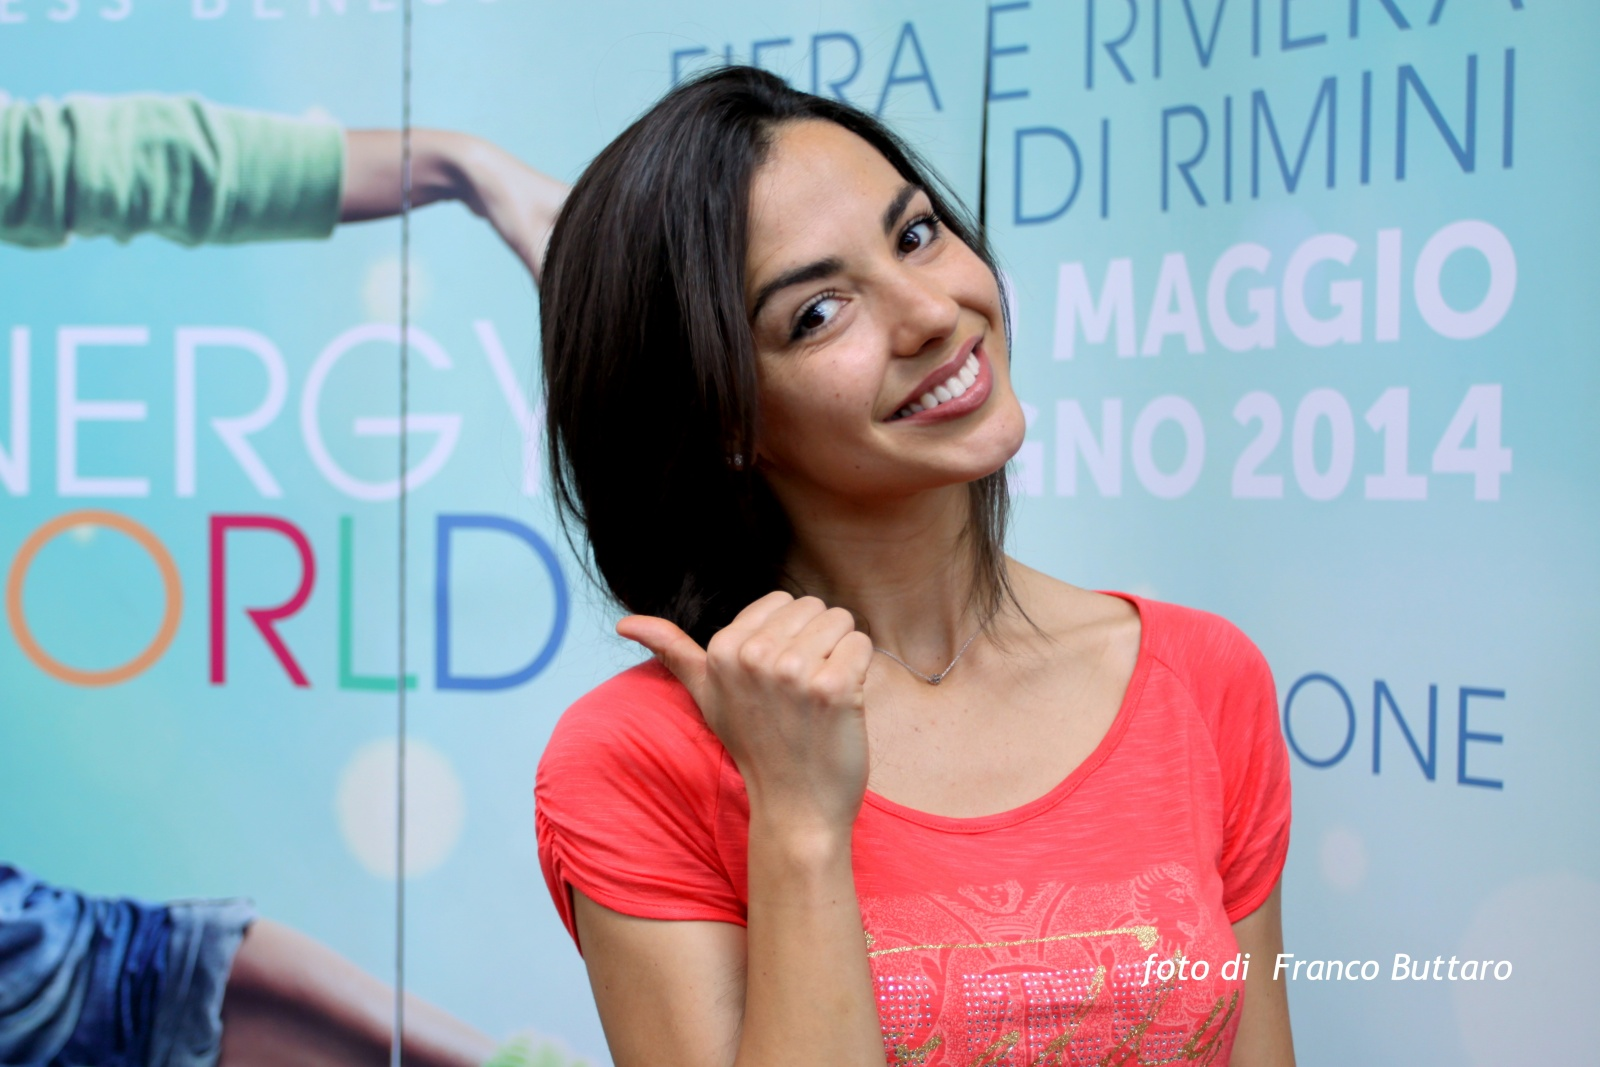 Rimini Wellness 2014 - Laura Barriales